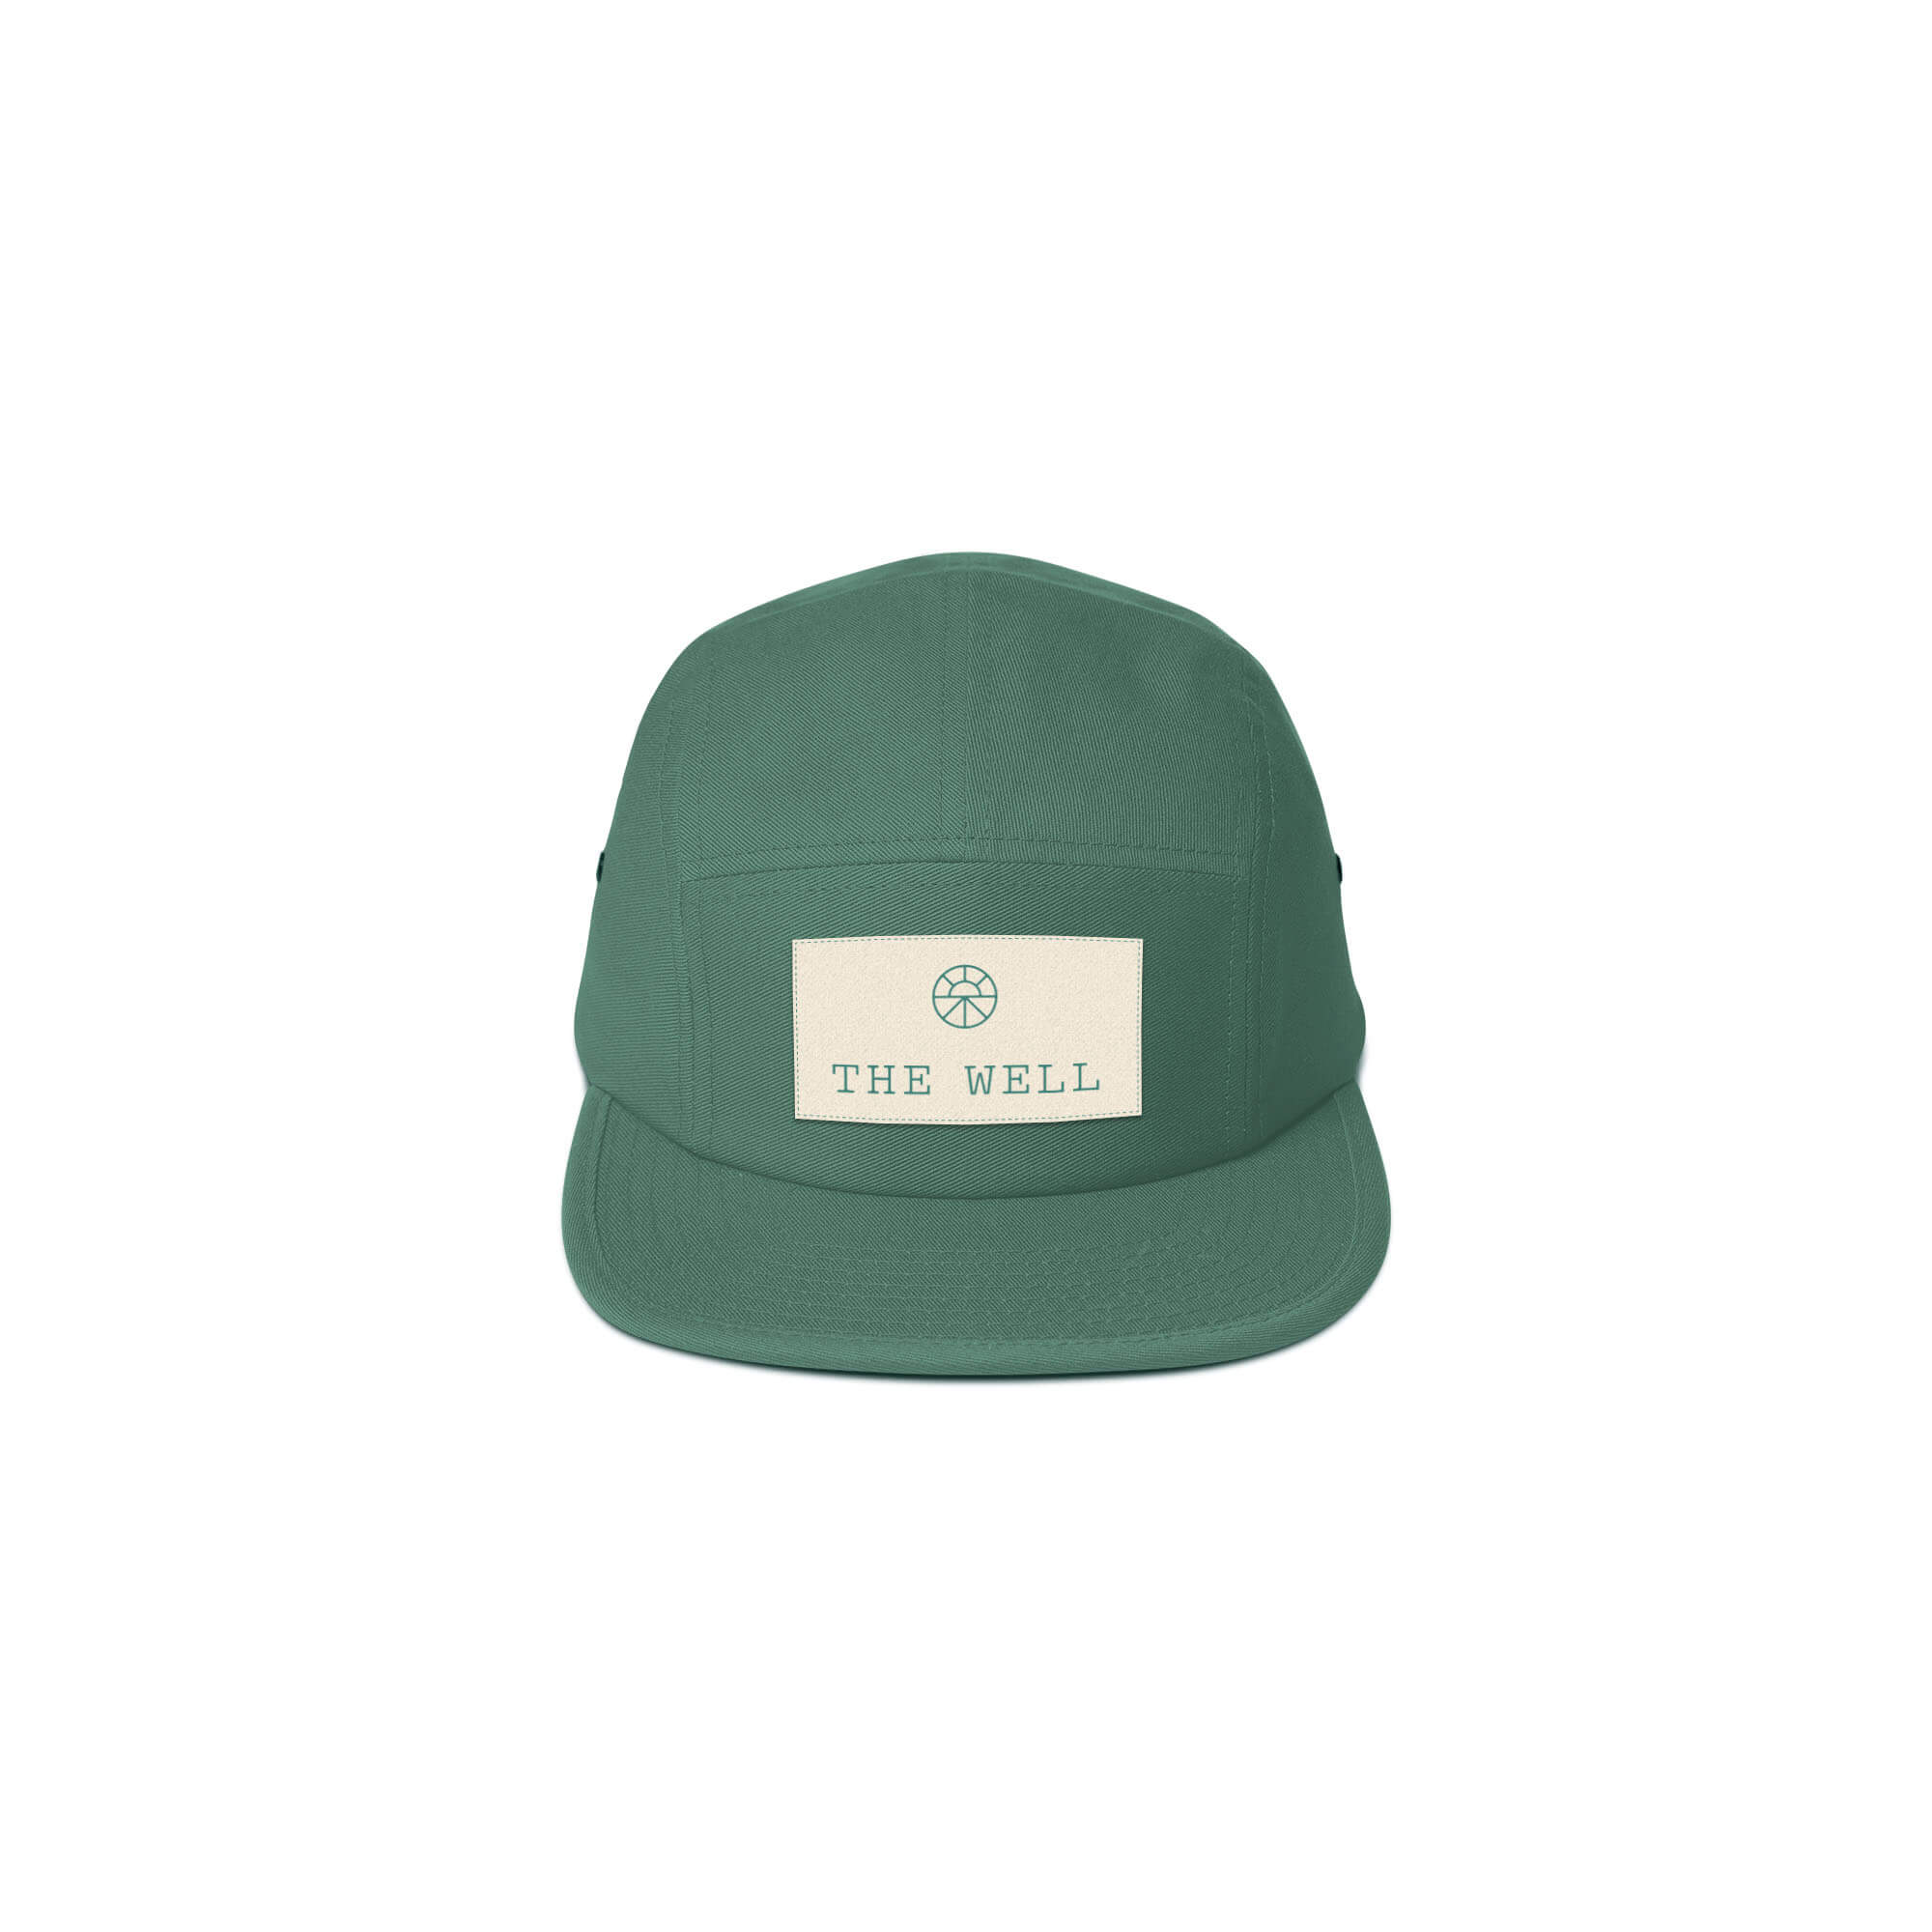 The Well 5 Panel Cap